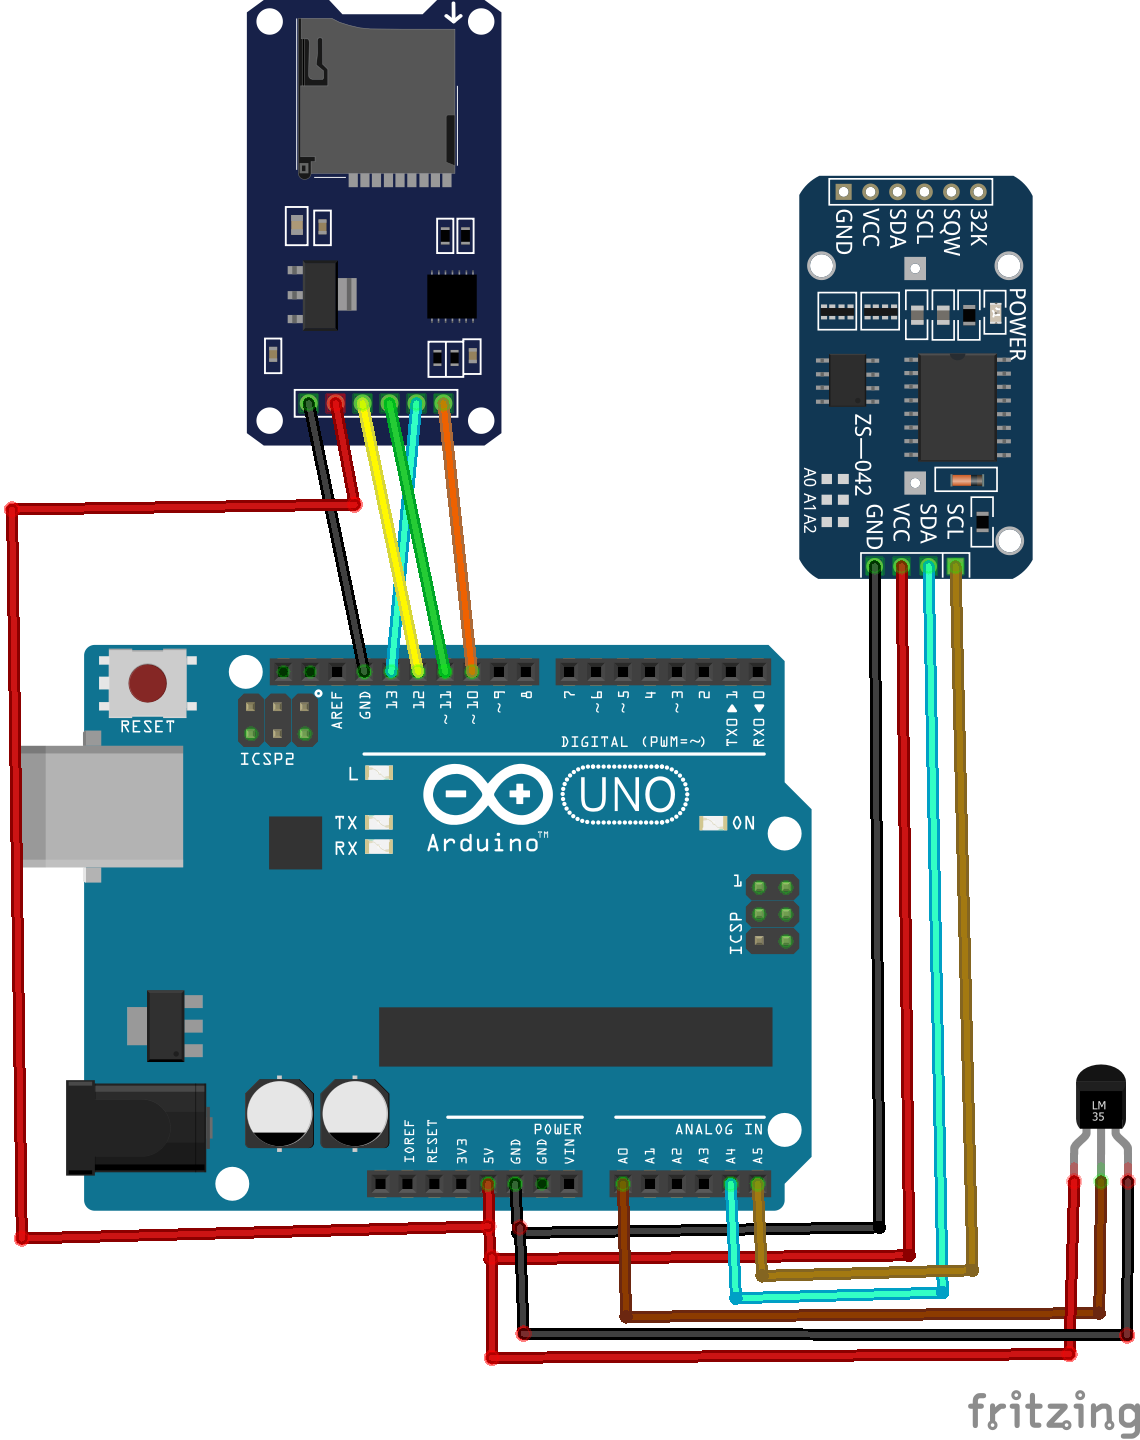 How to Make an Arduino SD Card Data Logger for Temperature Sensor